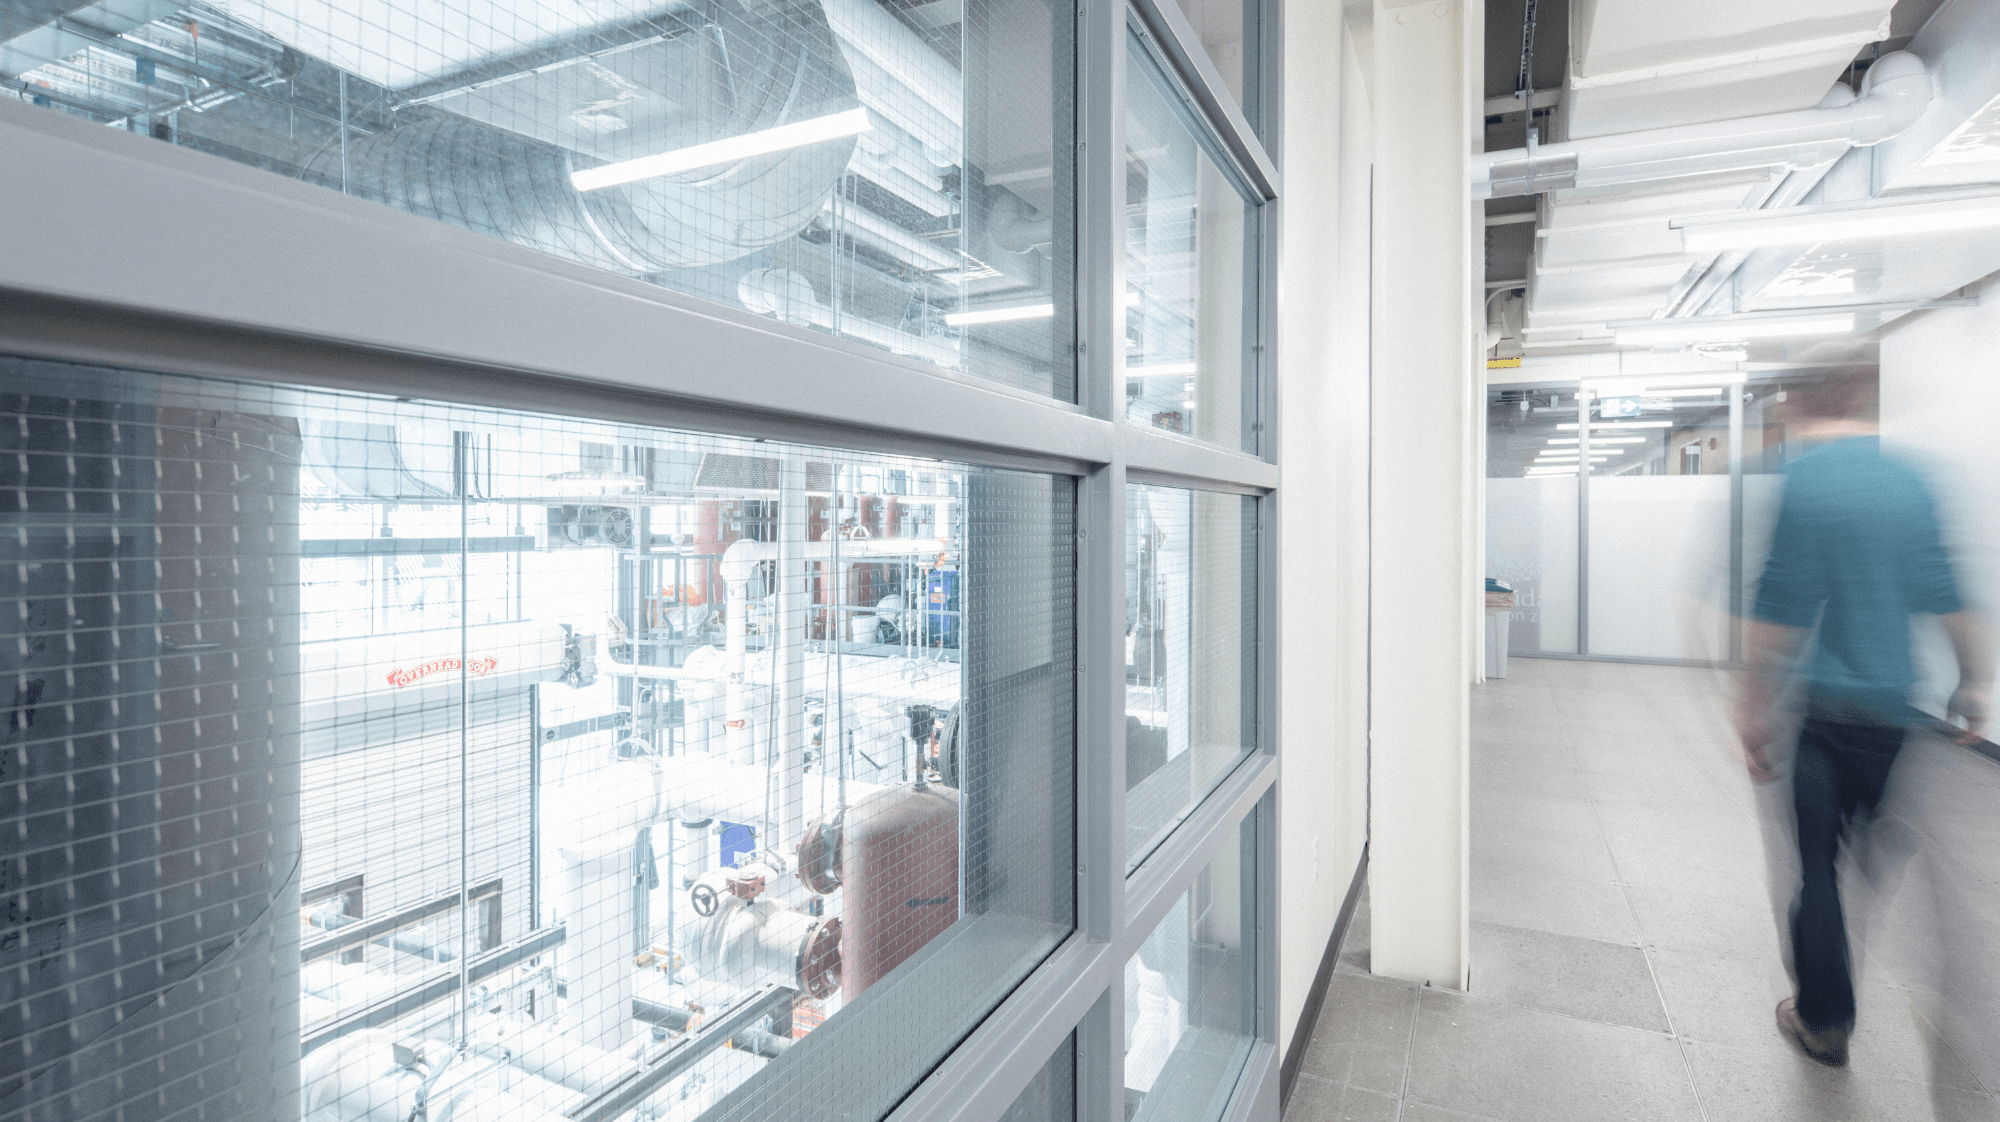 A hallway at Sheridan's Skilled Trades Centre with windows overlooking a workshop below.